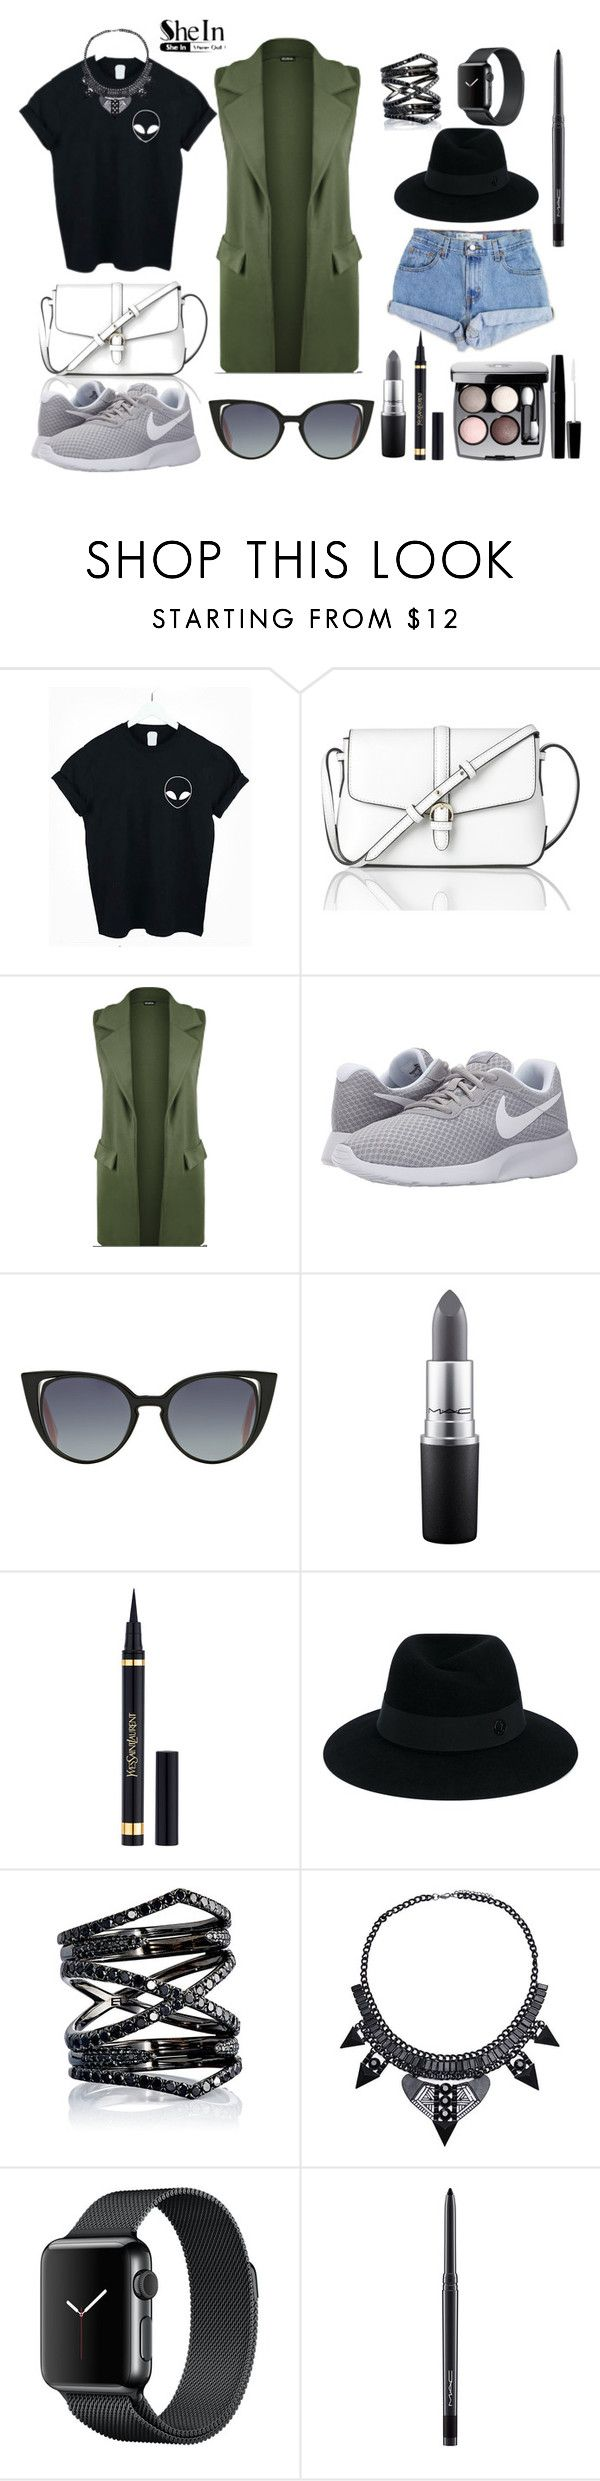 """Black t-shirt"" by a-z07 ❤ liked on Polyvore featuring Levi's, L.K.Bennett, WearAll, NIKE, Fendi, MAC Cosmetics, Yves Saint Laurent, Chanel, Maison Michel and Eva Fehren"